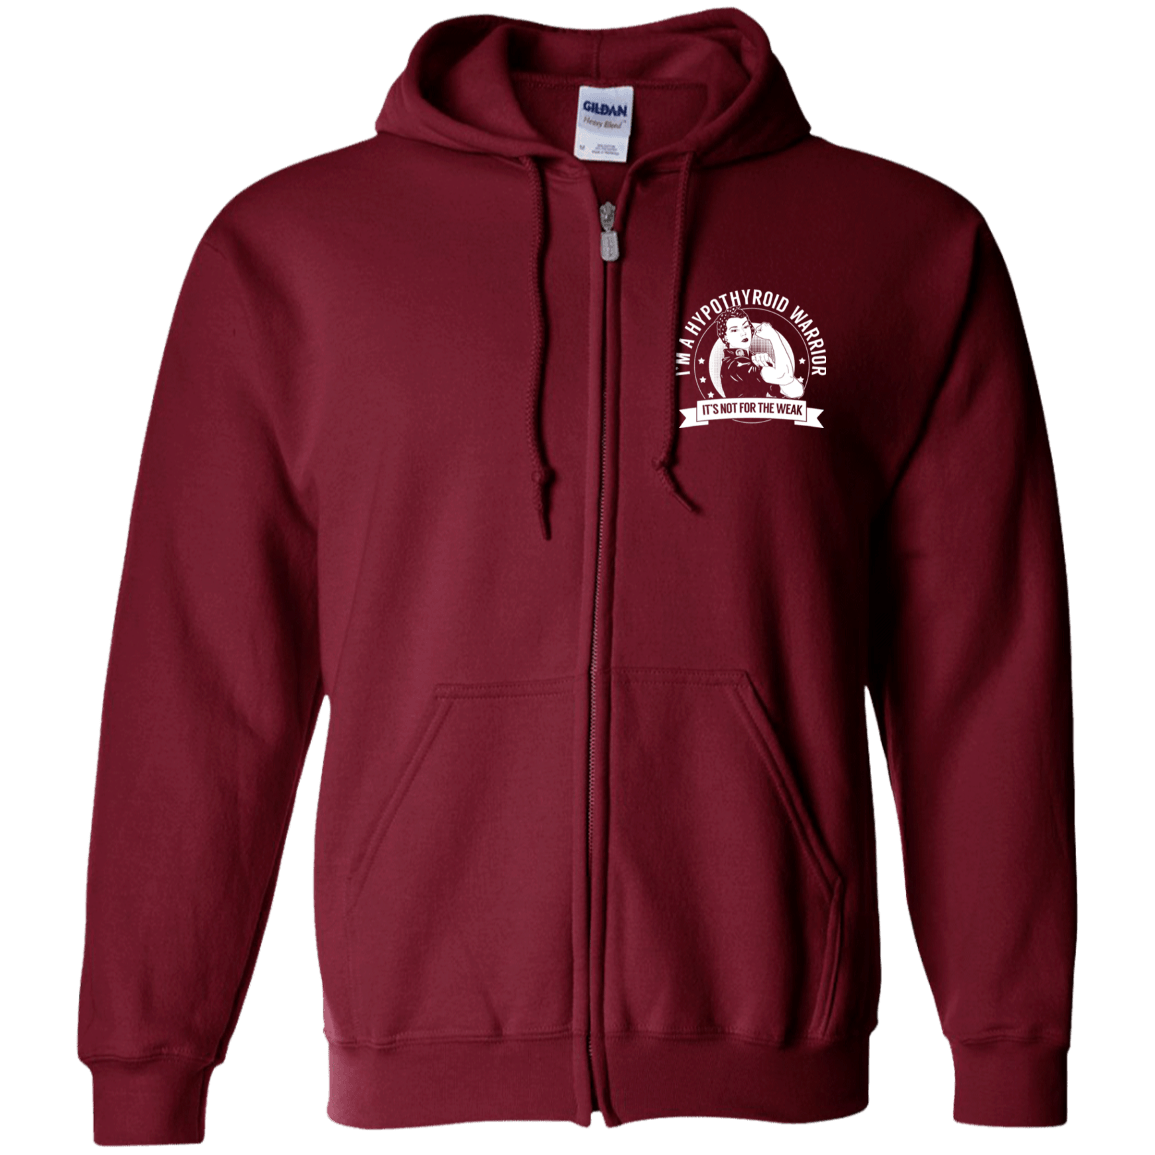 Sweatshirts - Hypothyroid Warrior NFTW Zip Up Hooded Sweatshirt